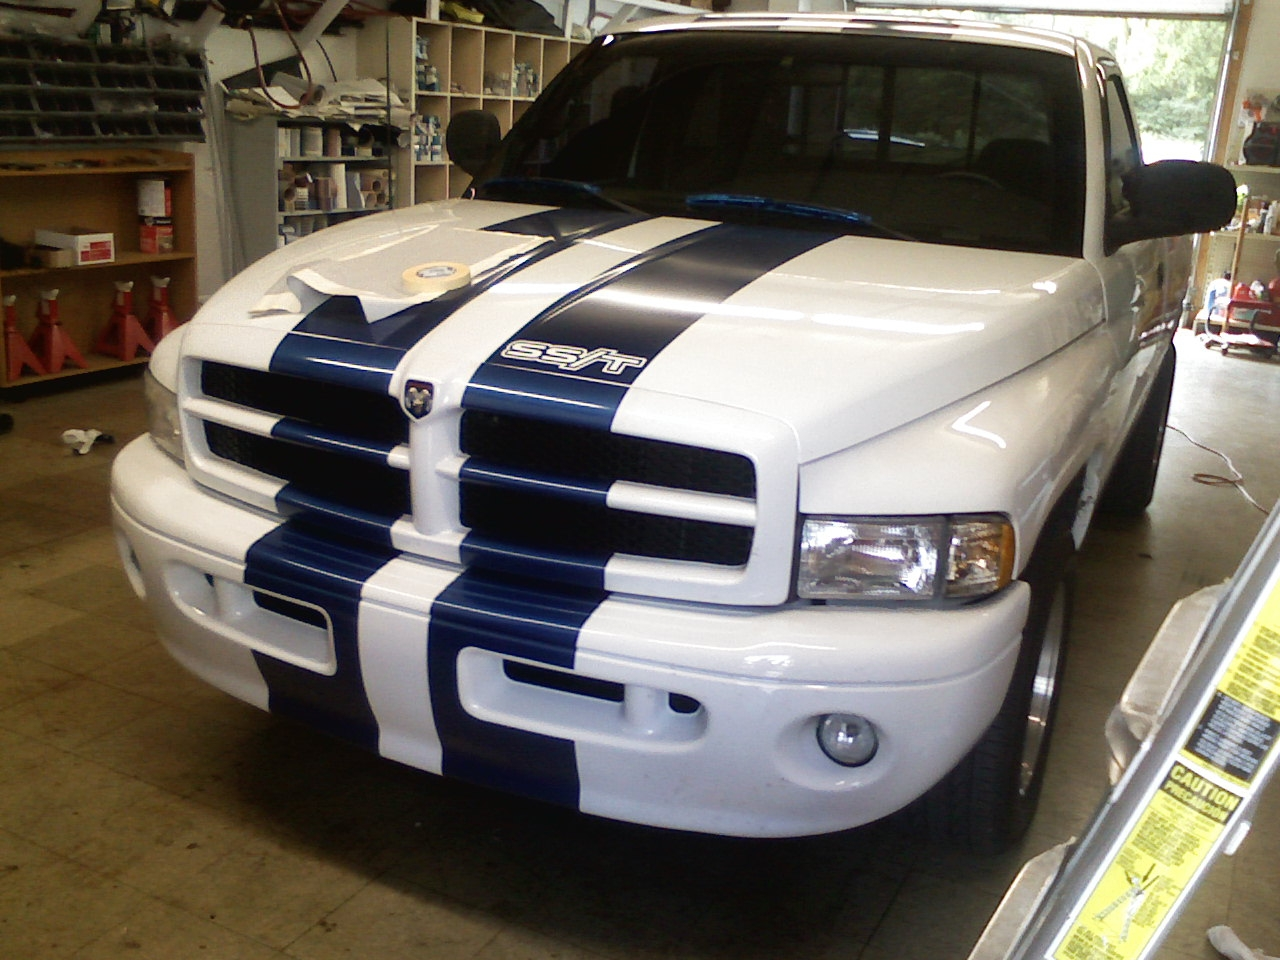 Original on 1997 Dodge Ram 1500 4x4 Sport